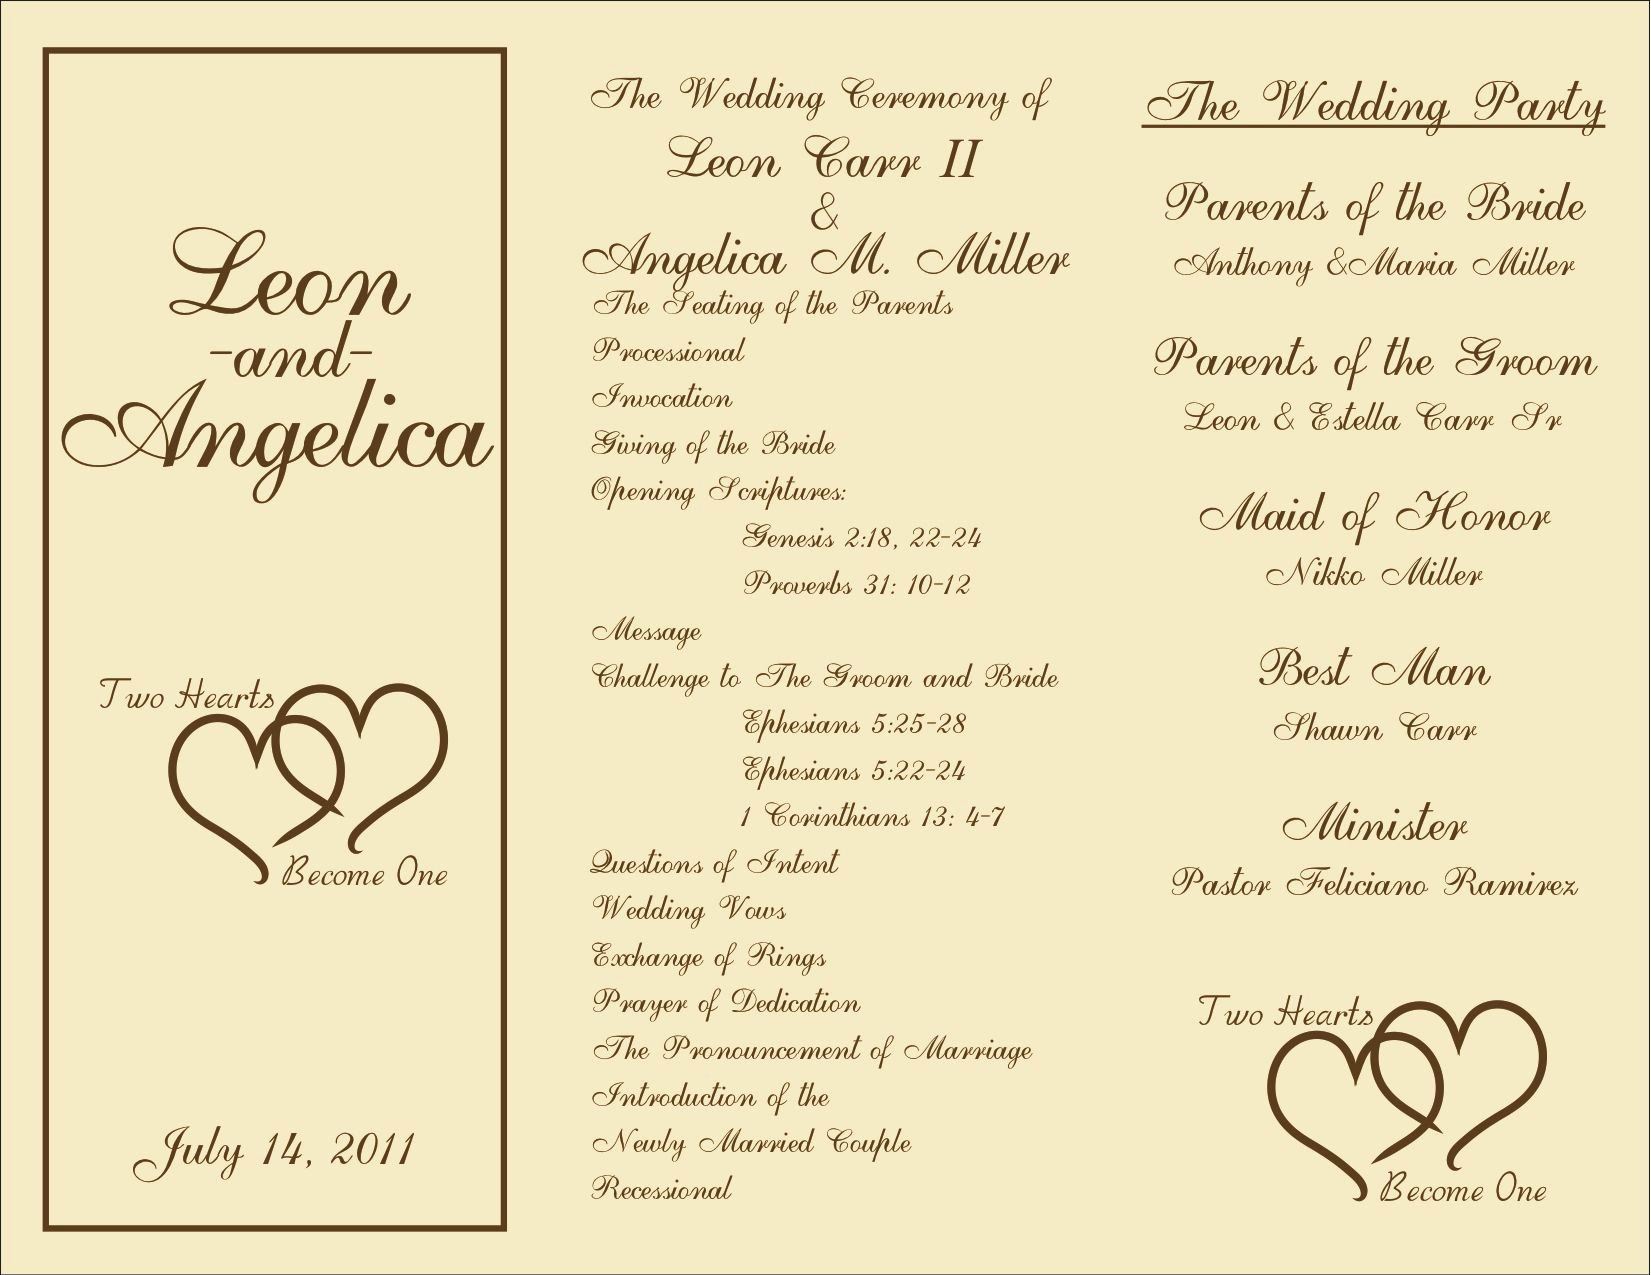 Wedding Program Template Free Download Unique Printable Wedding Programs On Pinterest